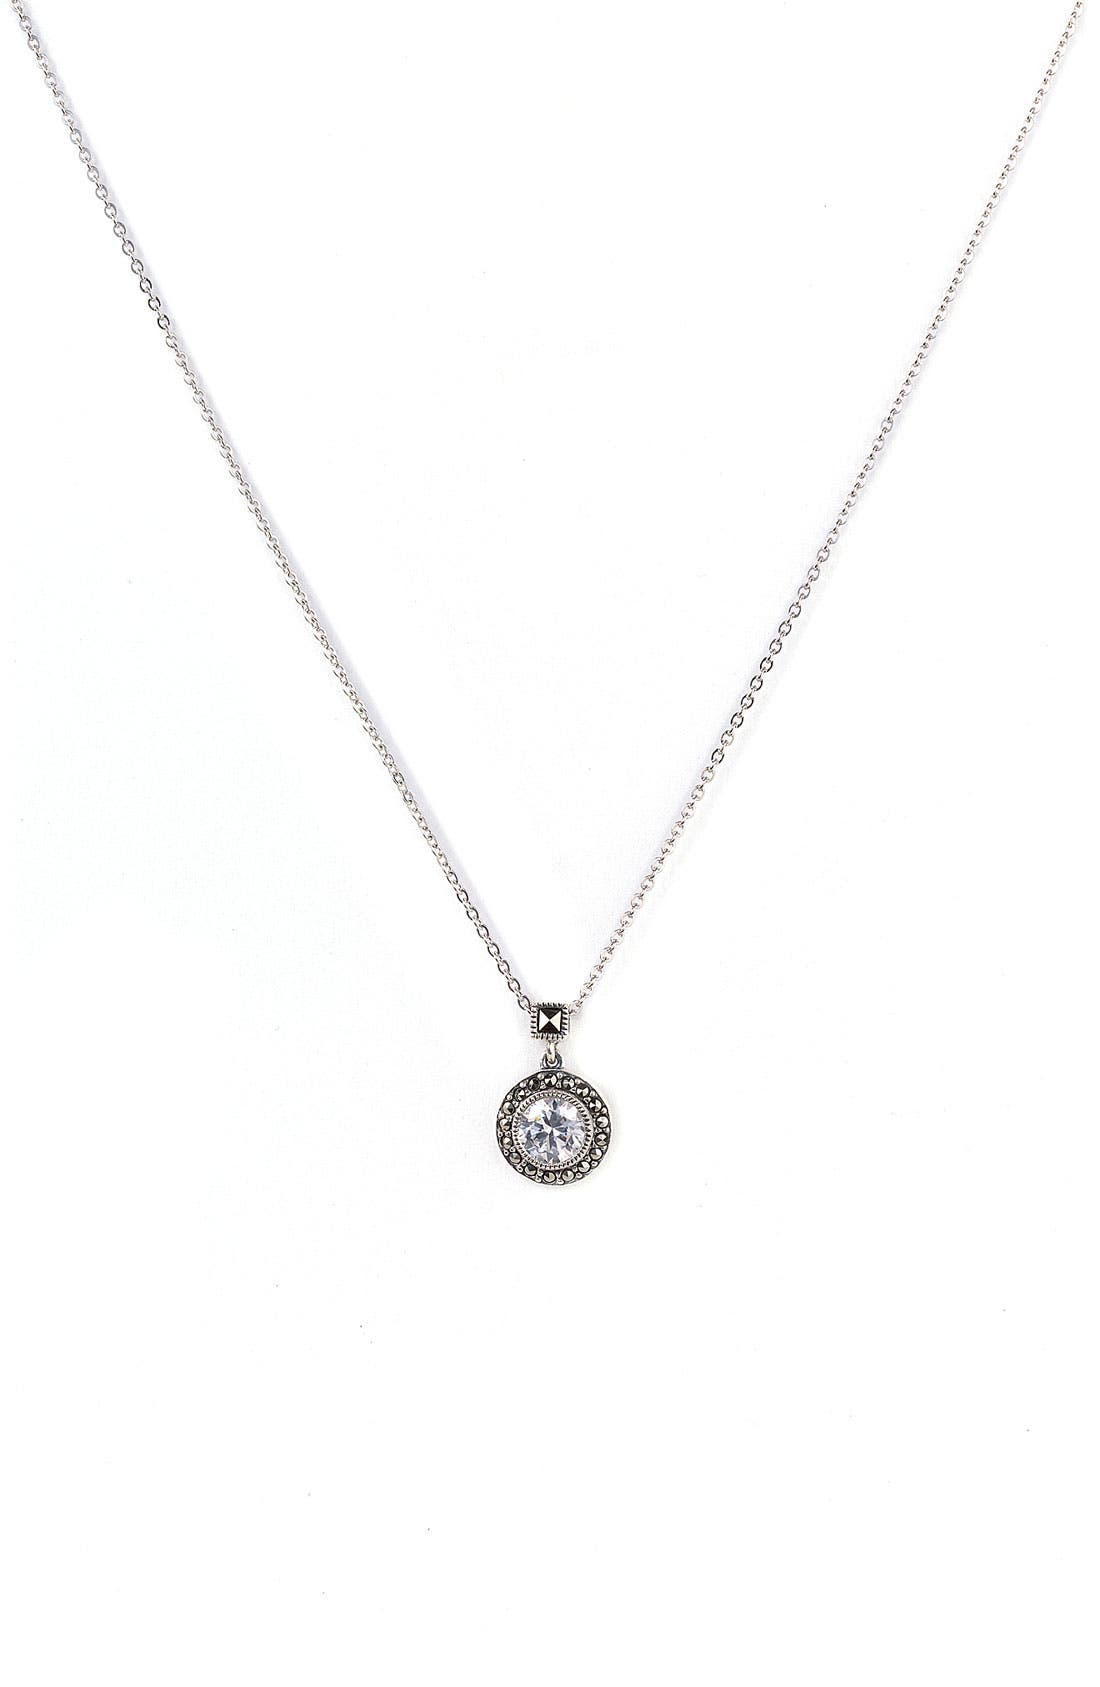 Alternate Image 1 Selected - Judith Jack 'Small Moonshadow' Necklace